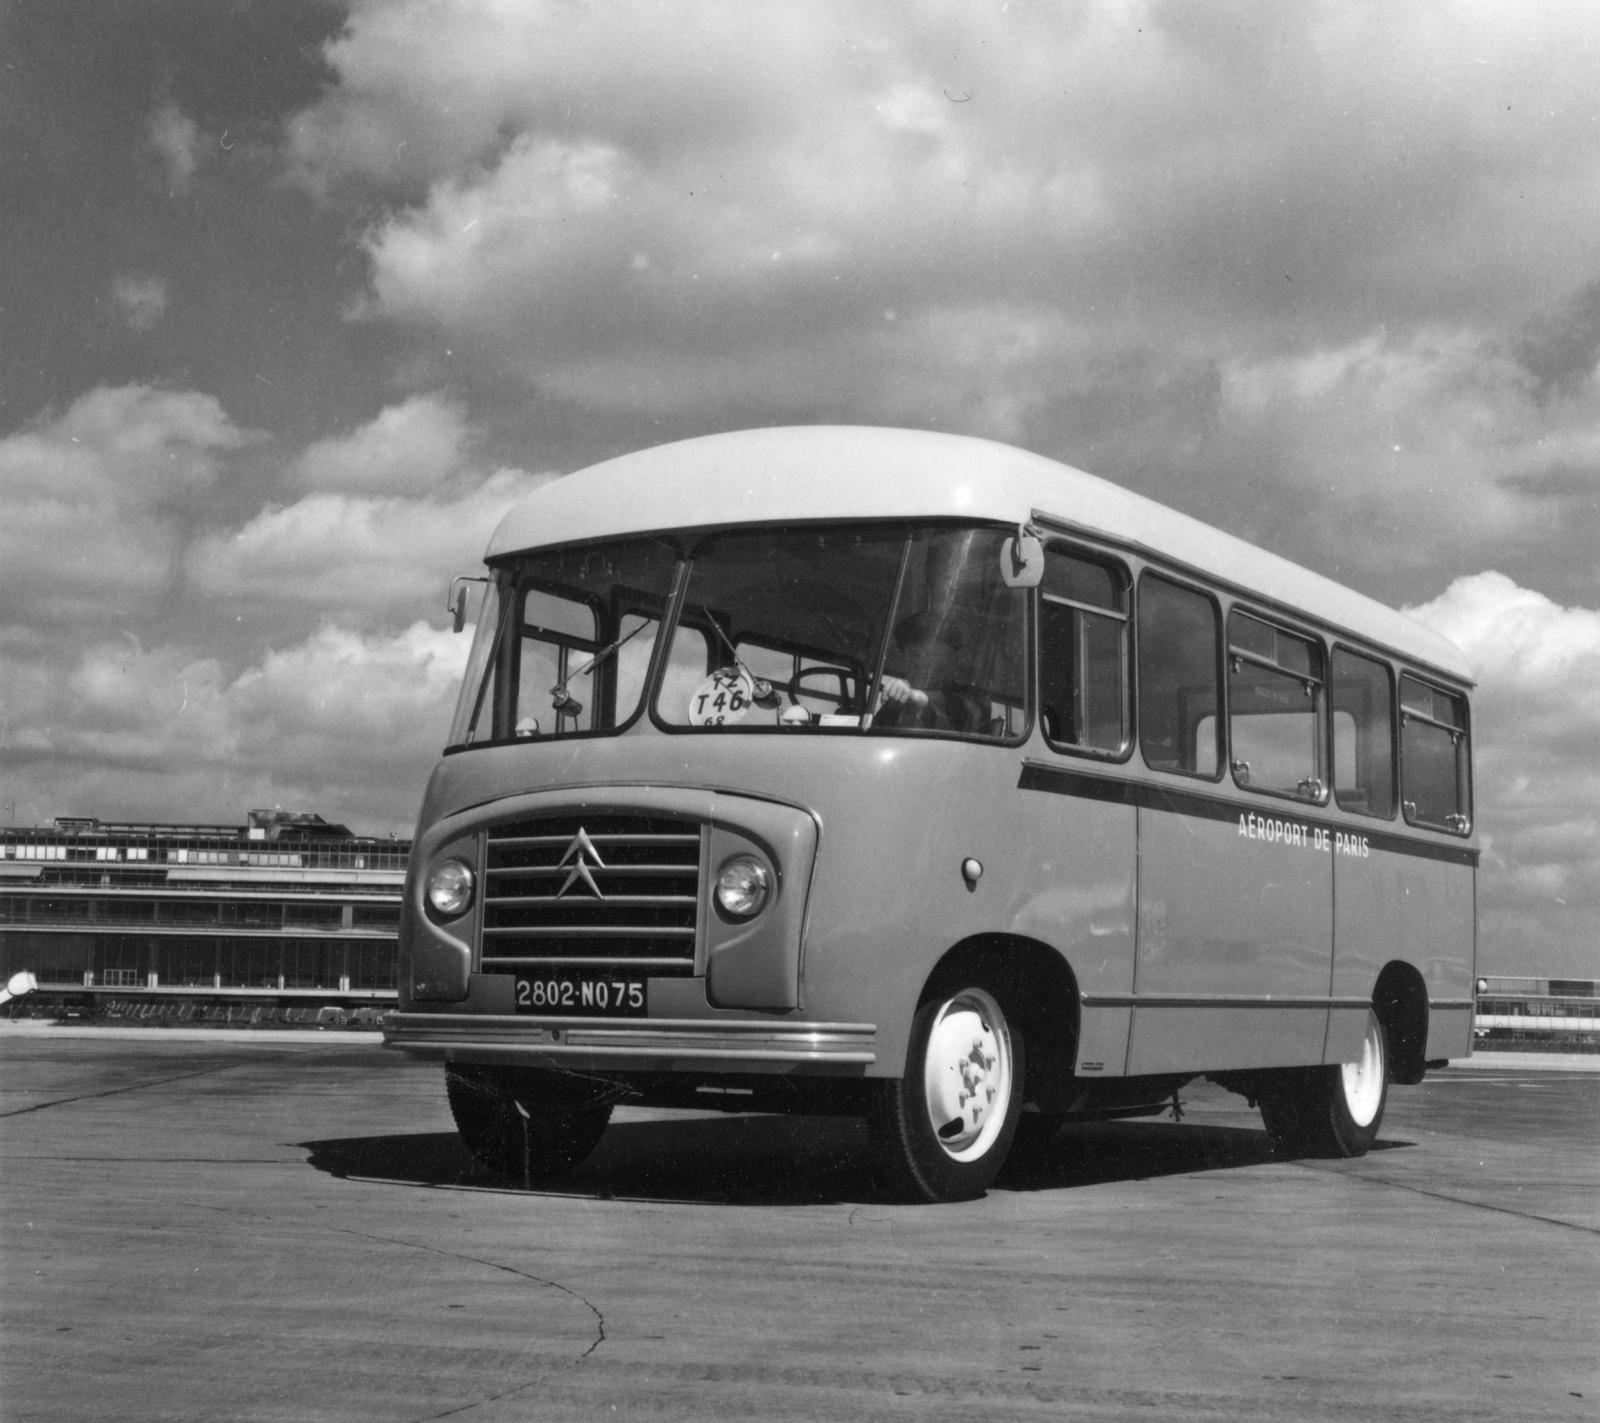 Autobus Aéroport de Paris Citroën